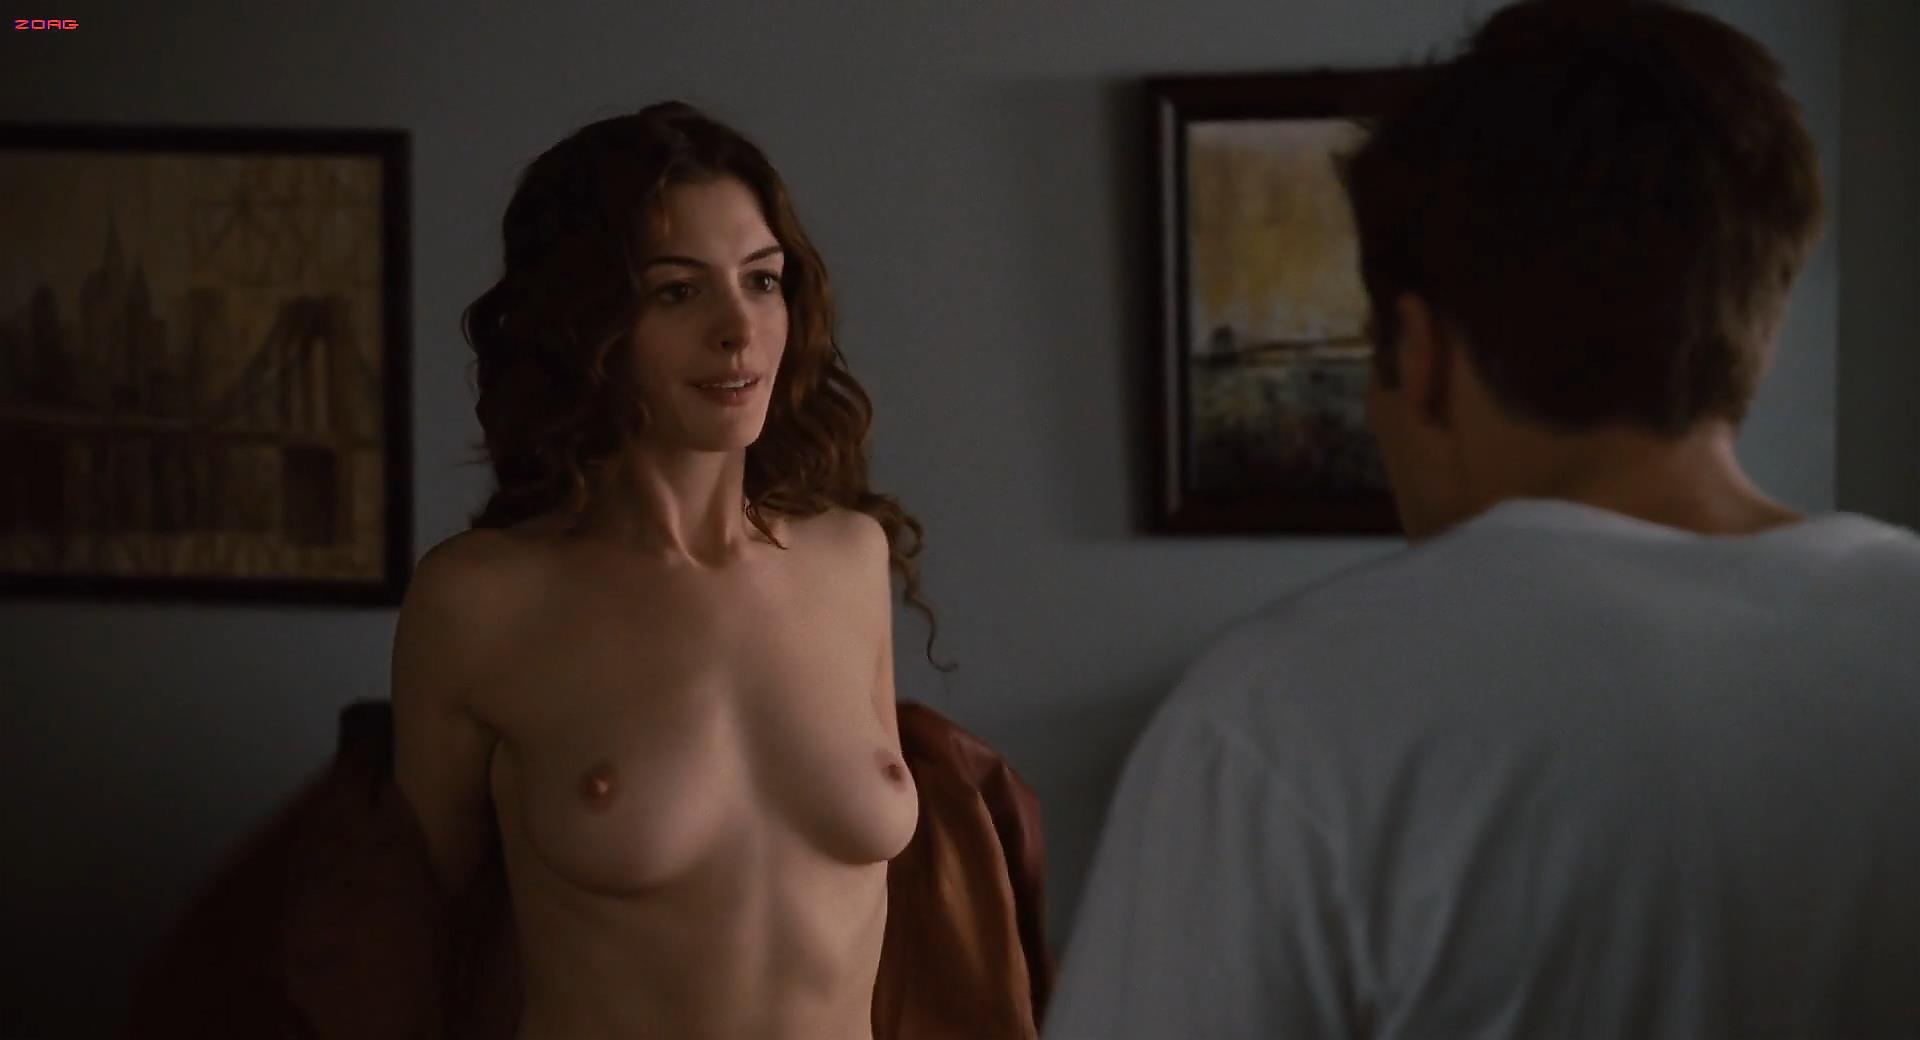 anne hathaway naked movie